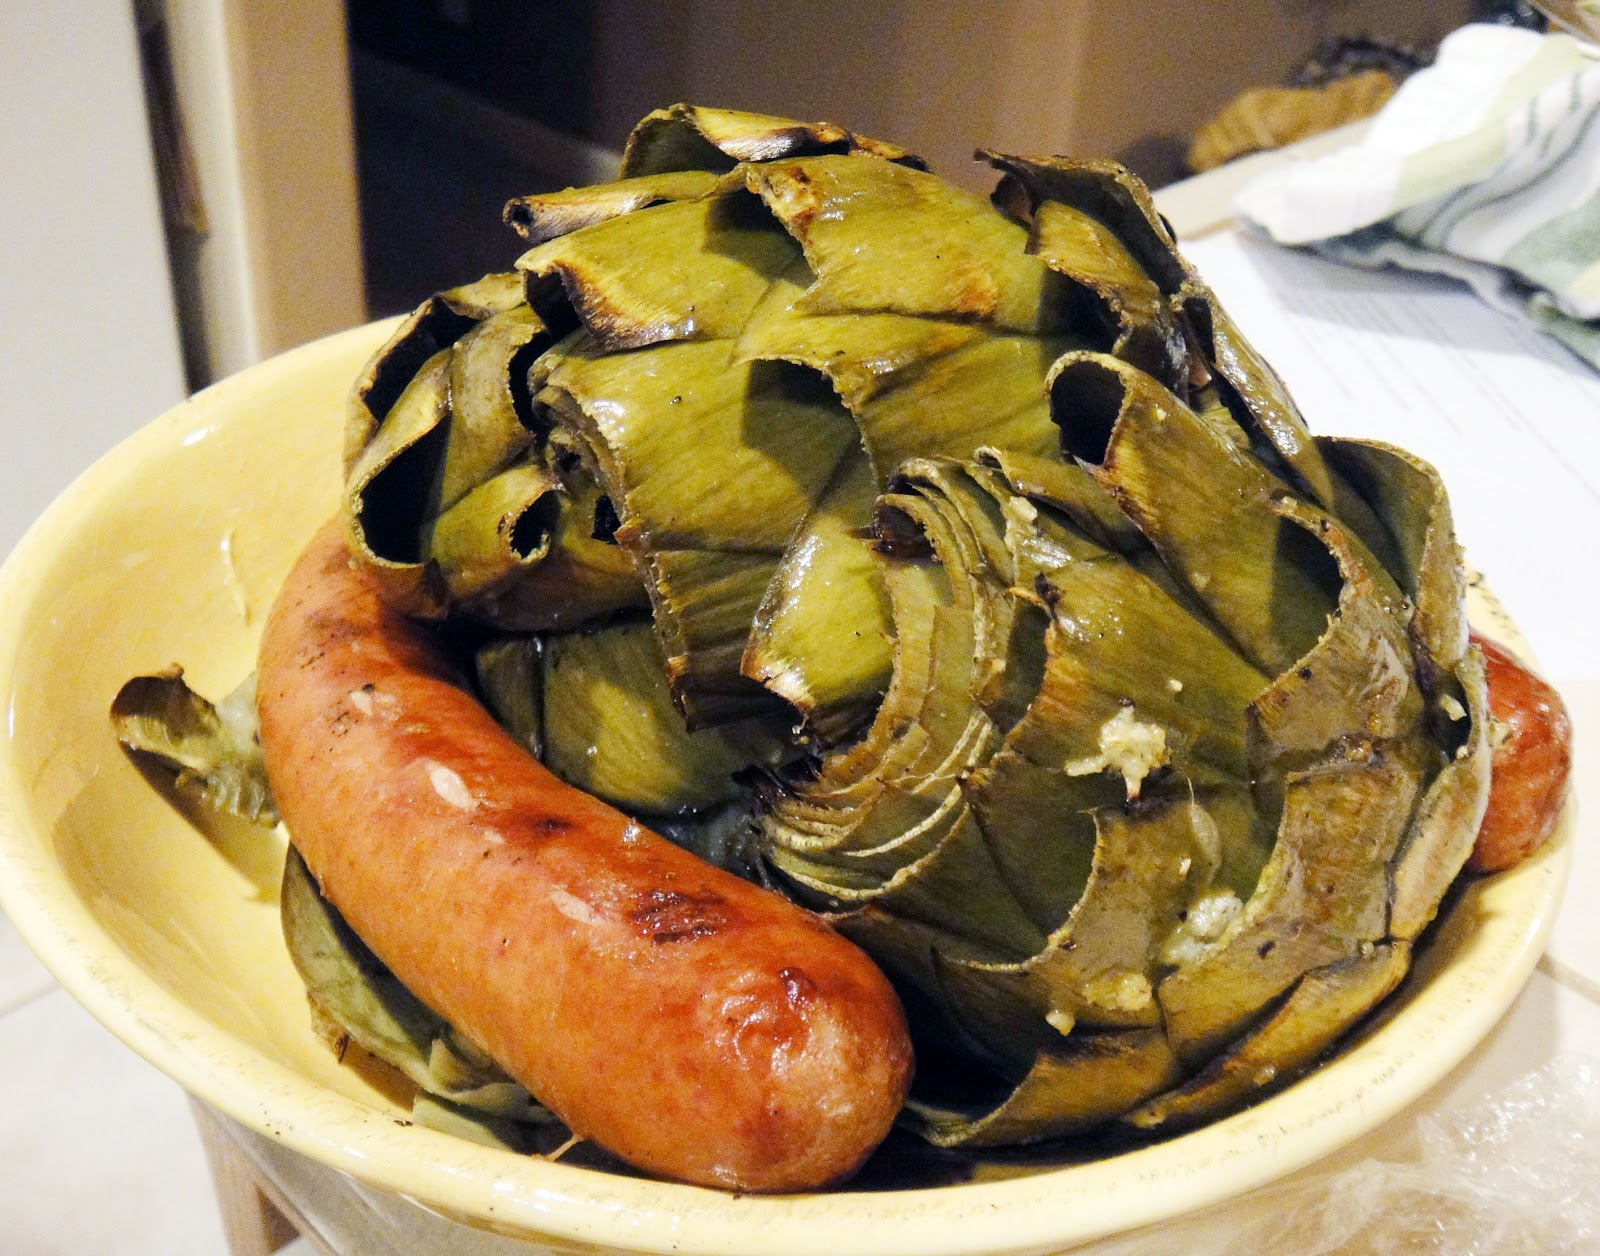 Grilled artichokes and reduced fat kielbasa. Next time, I shall grill ...